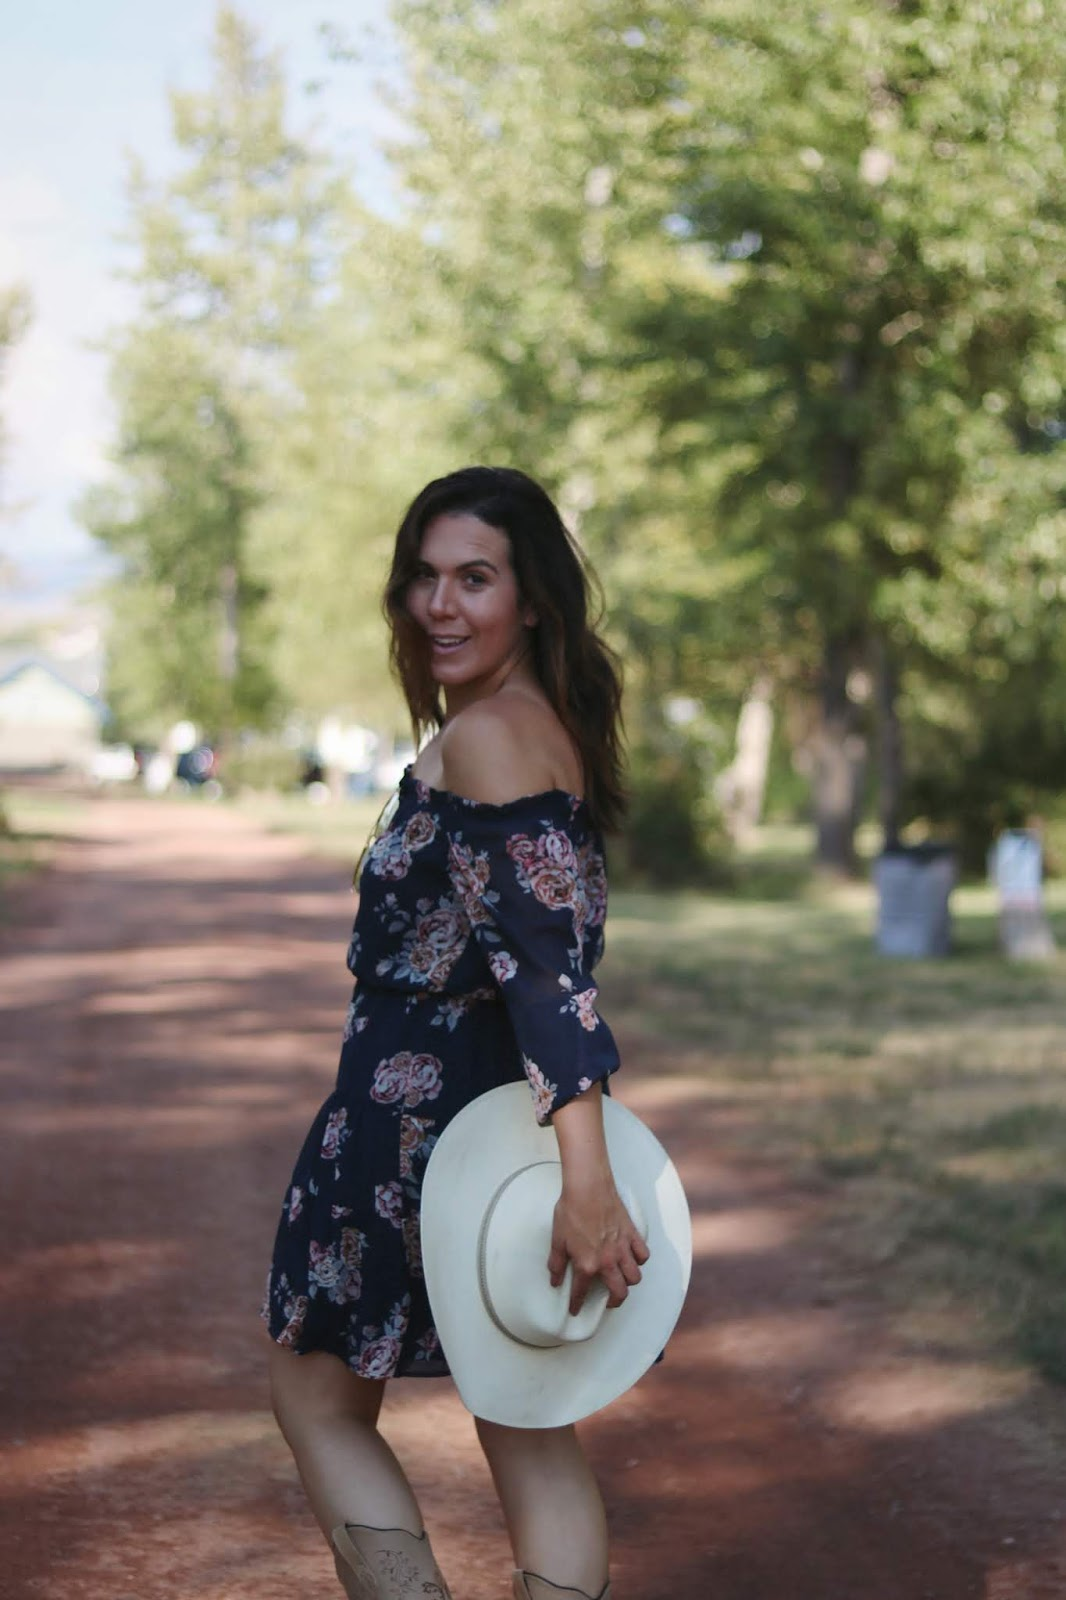 le chateau flower dress outfit Cowboy boots outfit country music festival date night